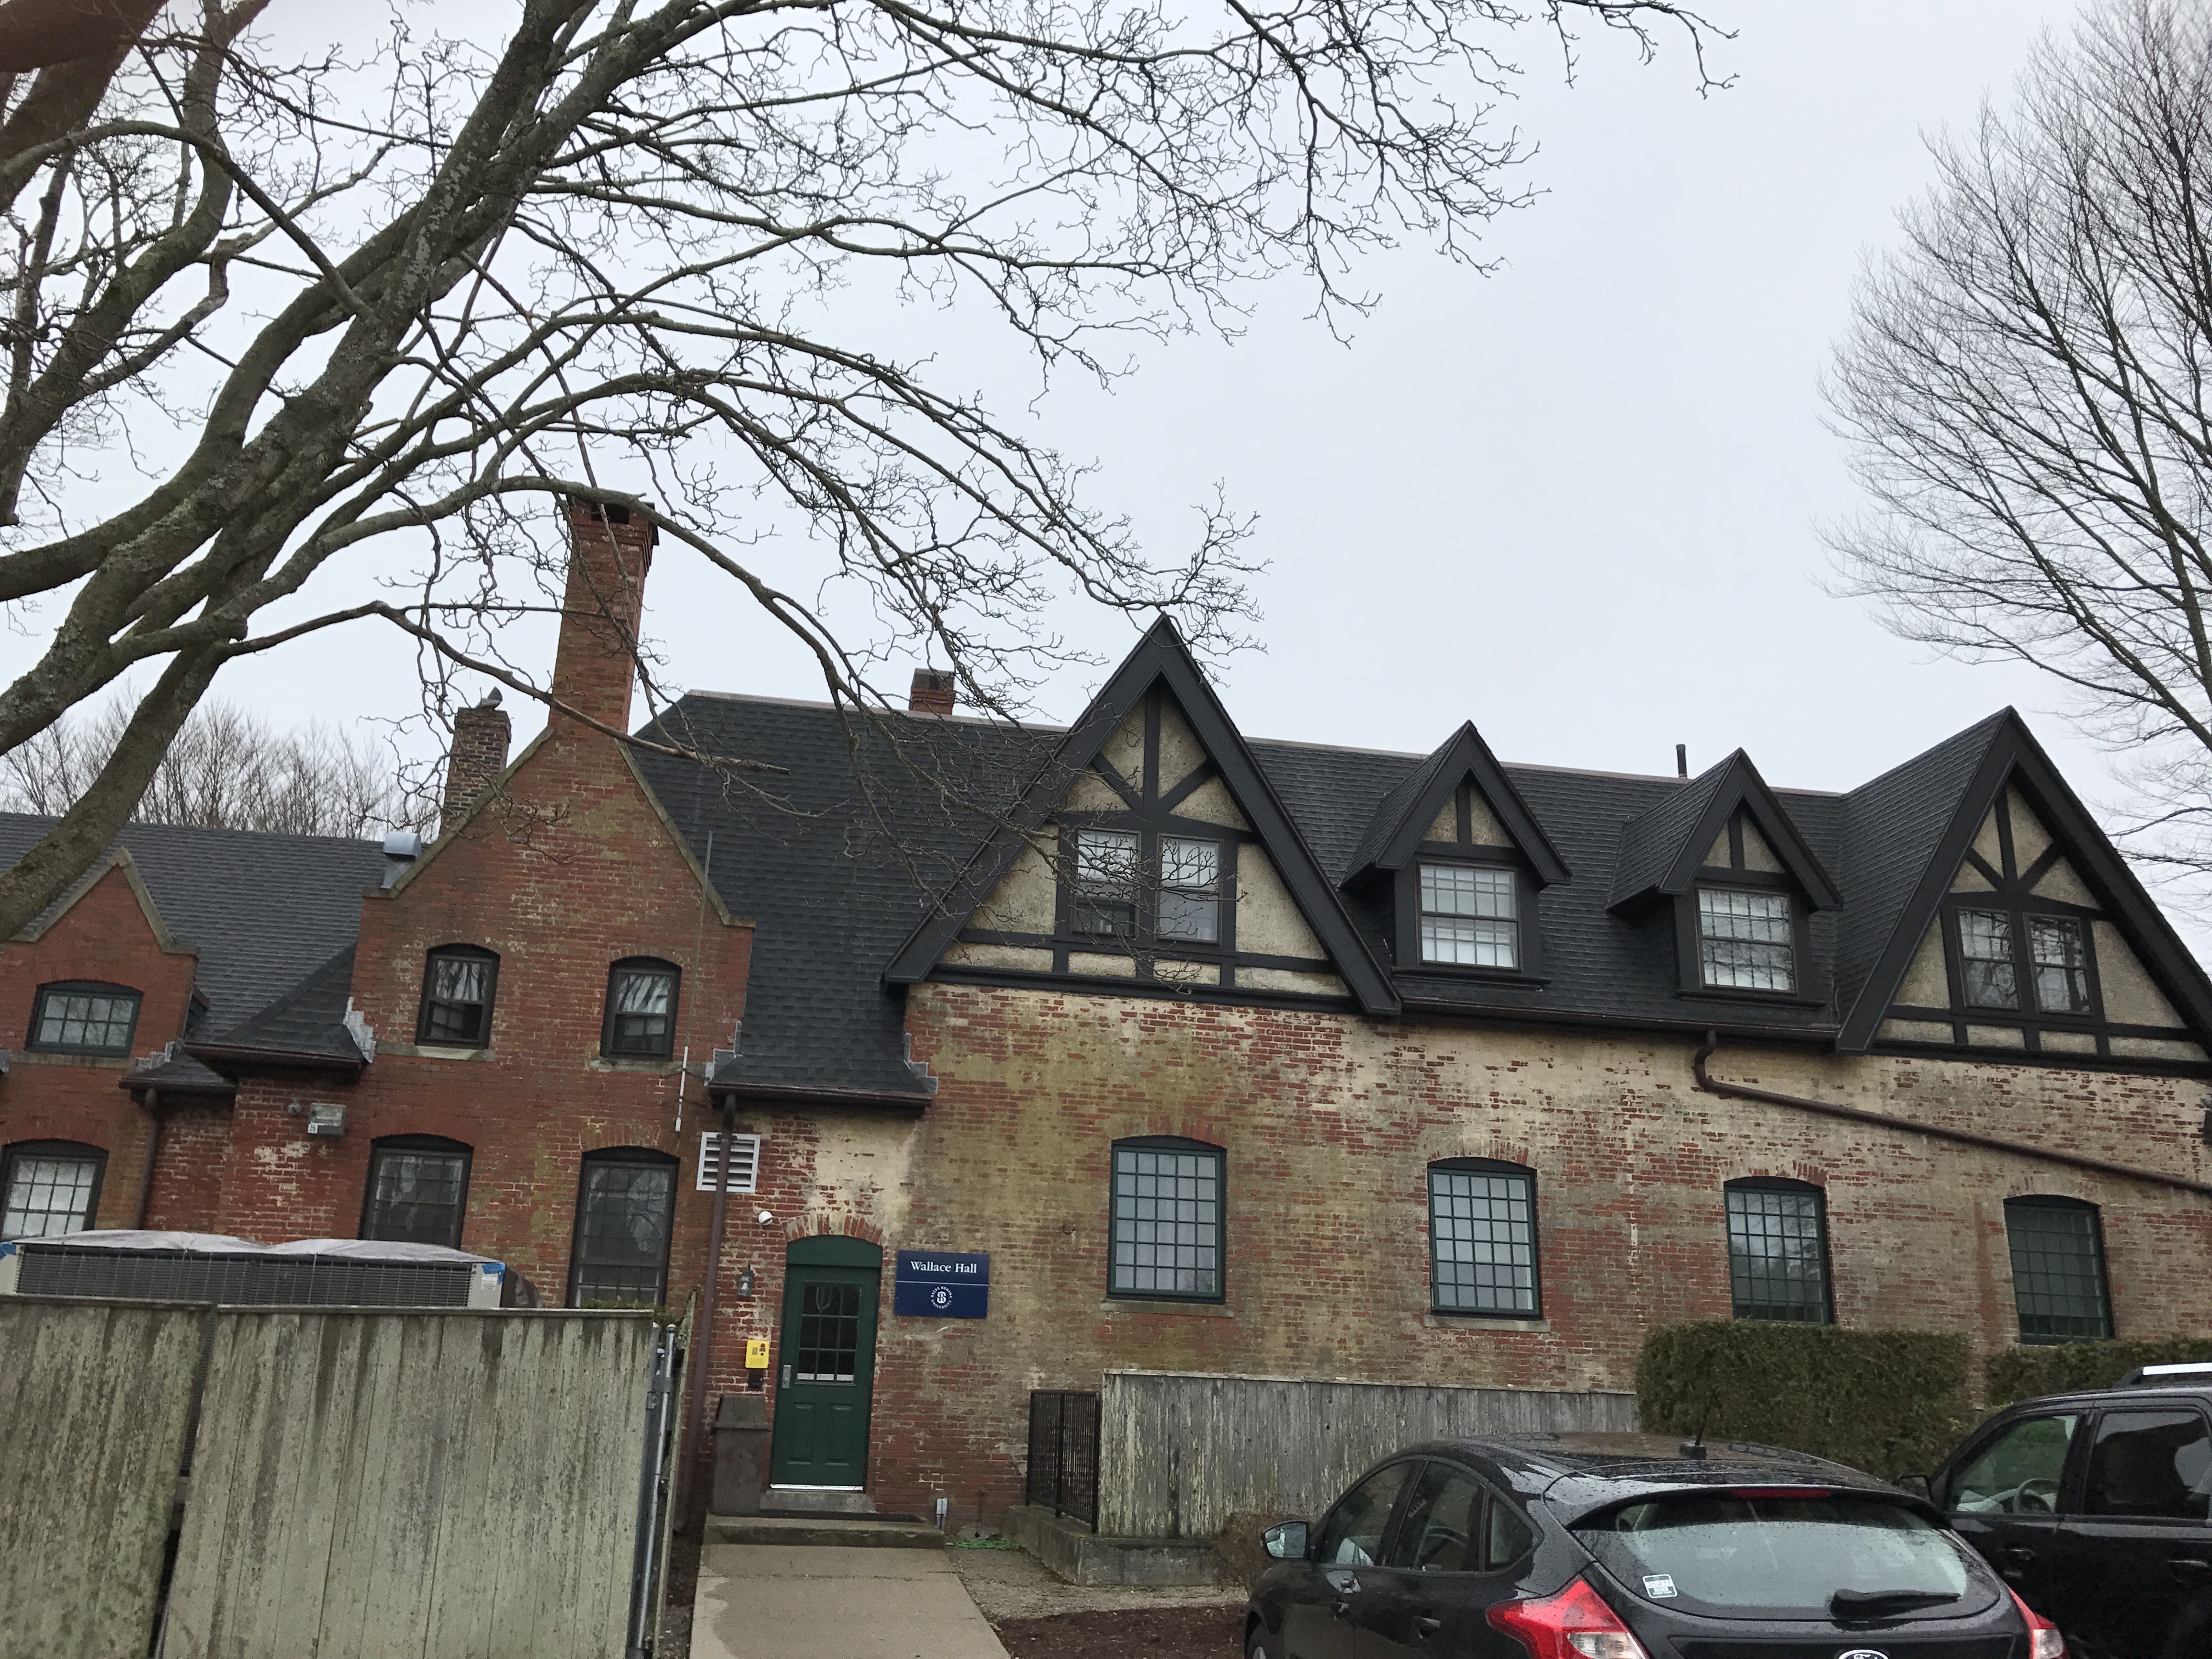 Wallace Hall rear view. Many chimneys, brick and stucco surfaces, steeply pitched roof, and beams shown. All of these are common features of Tudor Revival Style Homes.